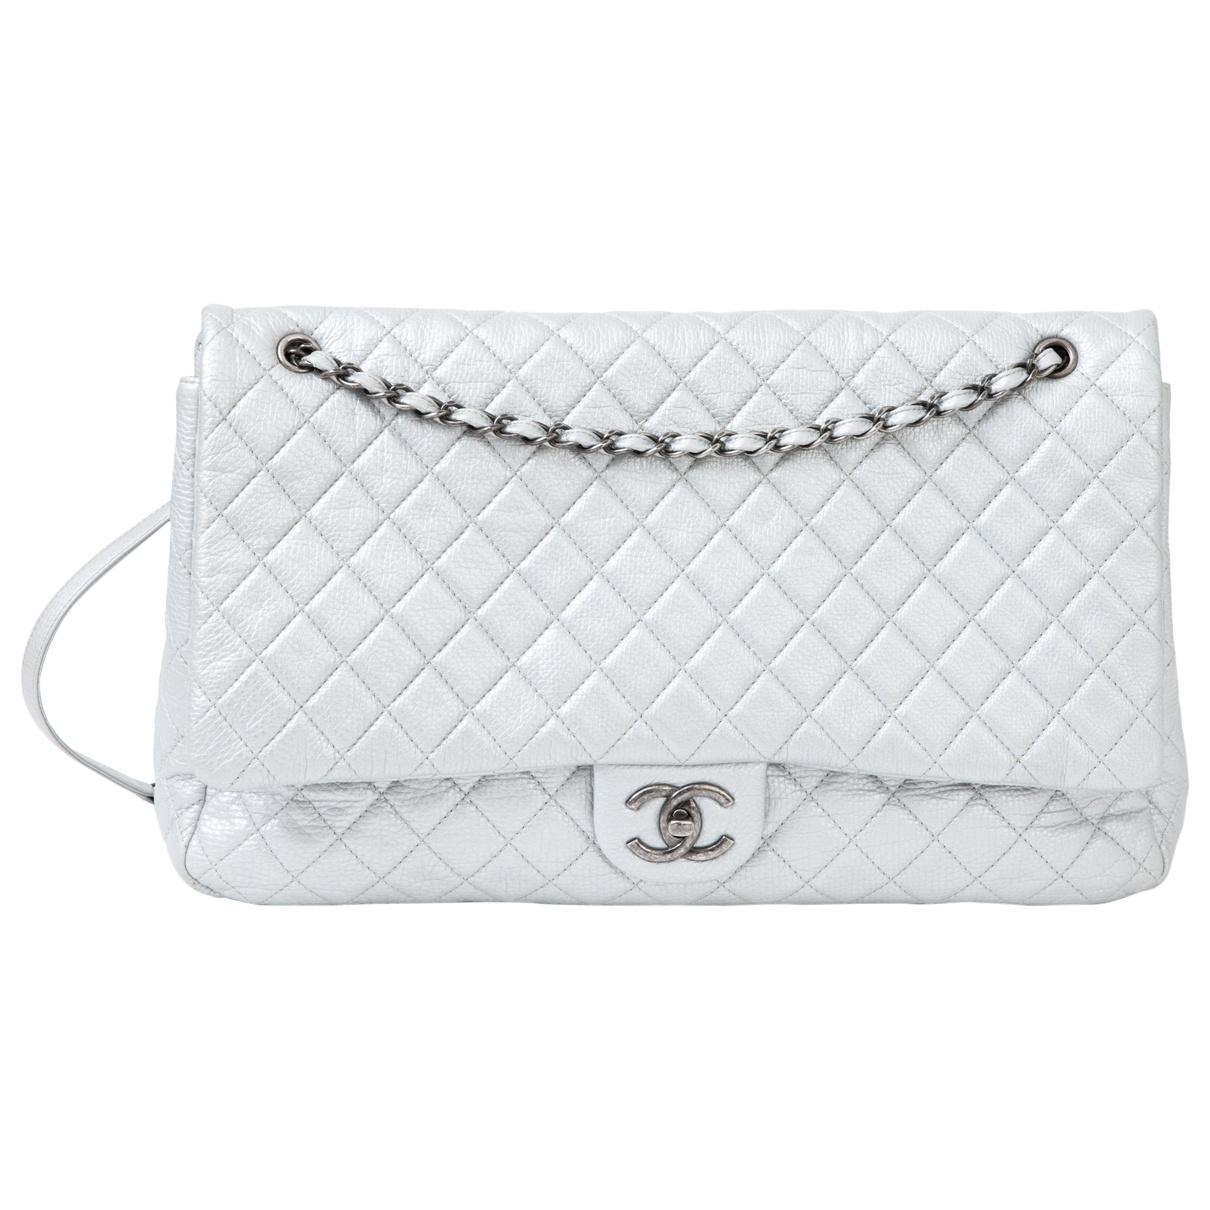 221f98a63b18 Chanel. Women s Metallic Pre-owned Timeless Silver Leather Handbags.  5